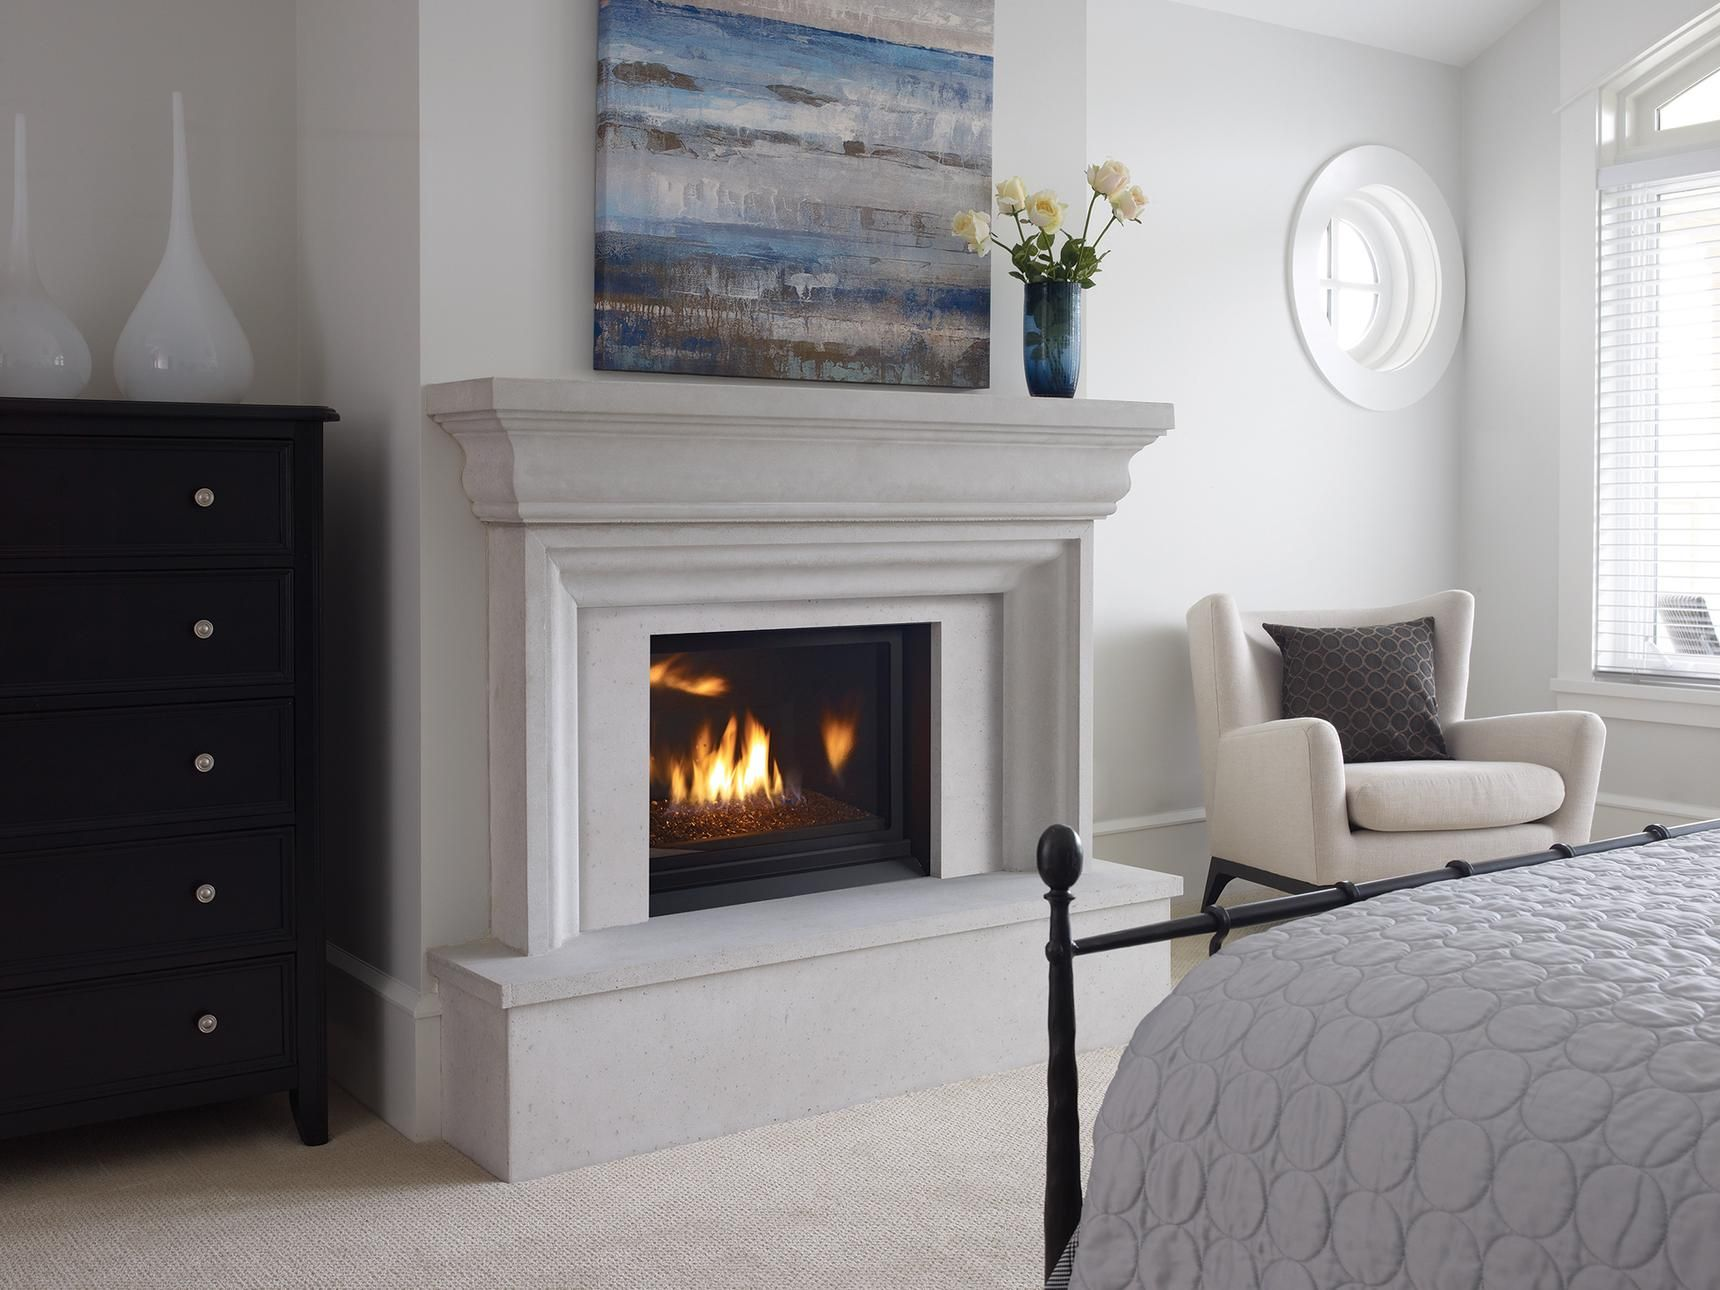 Marvelous Can I Convert A Gas Fireplace To Wood Burning Part - 12: The 3 Best Choices To Replace A Wood-Burning Fireplace